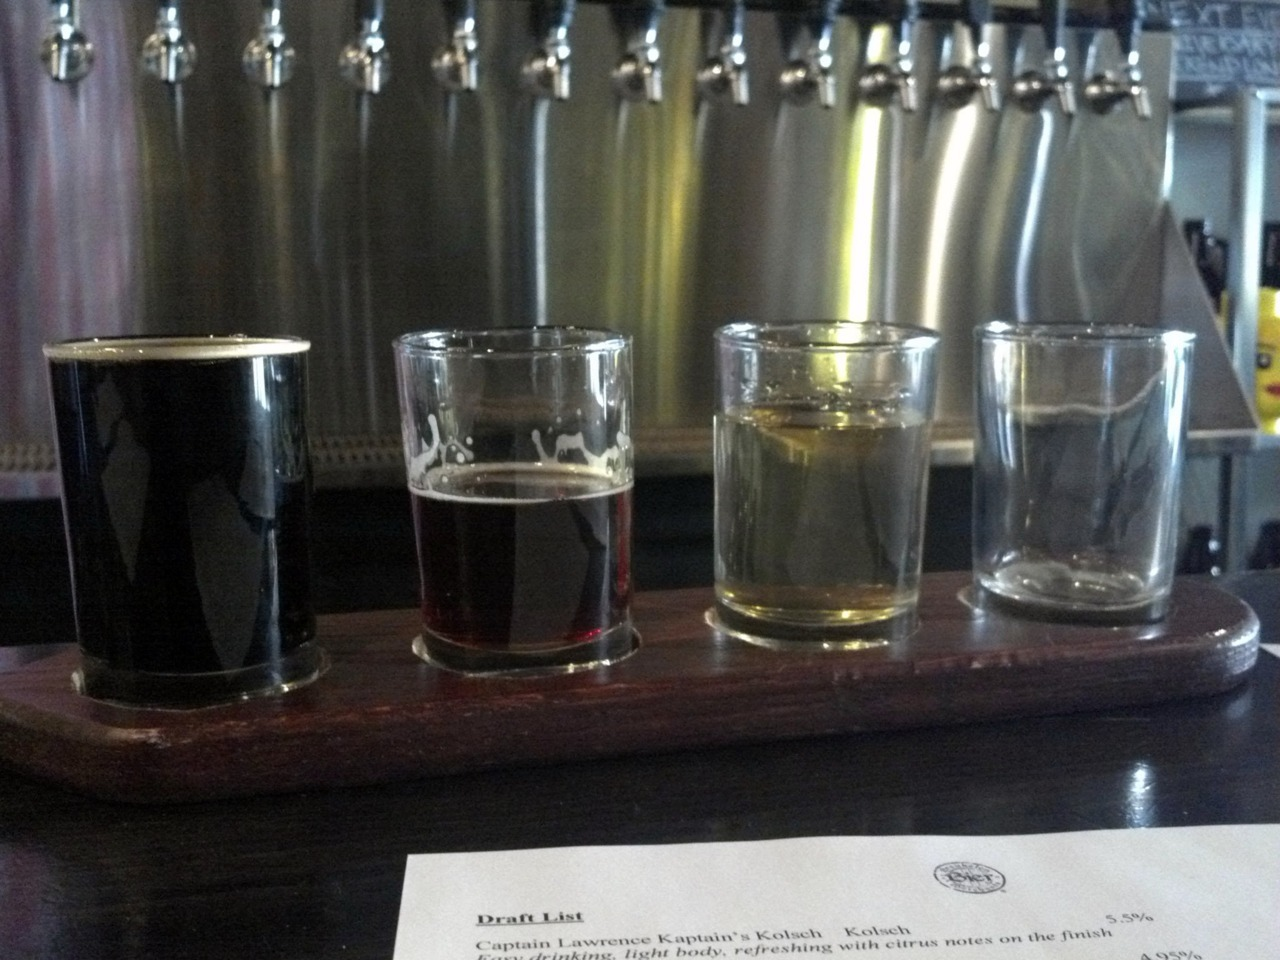 Beer tasting at Bier, Brooklyn.